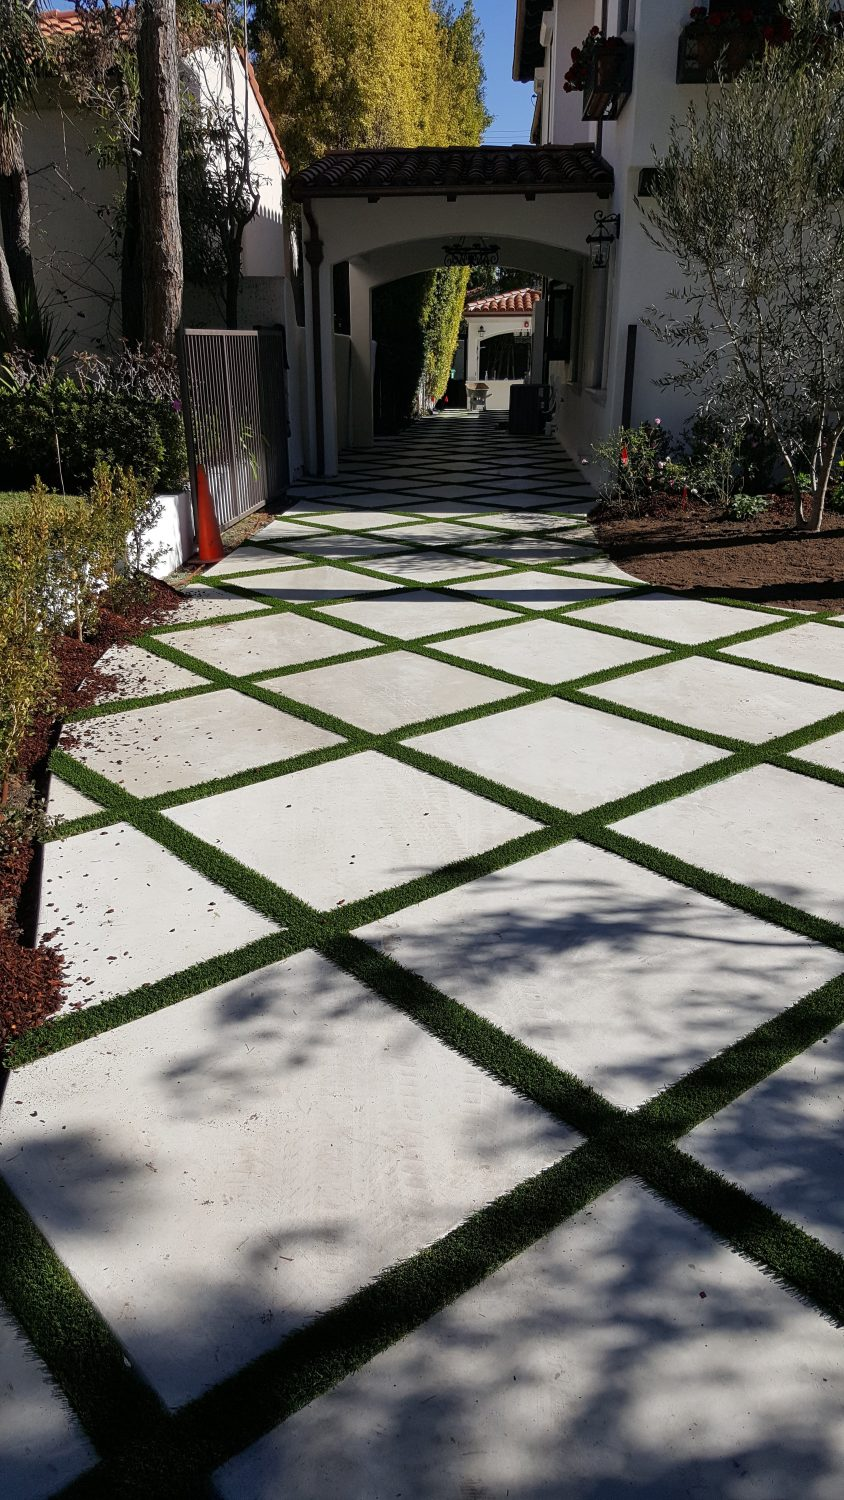 Image of Winding Turf Strip Driveway Leading Up To Home Entrance